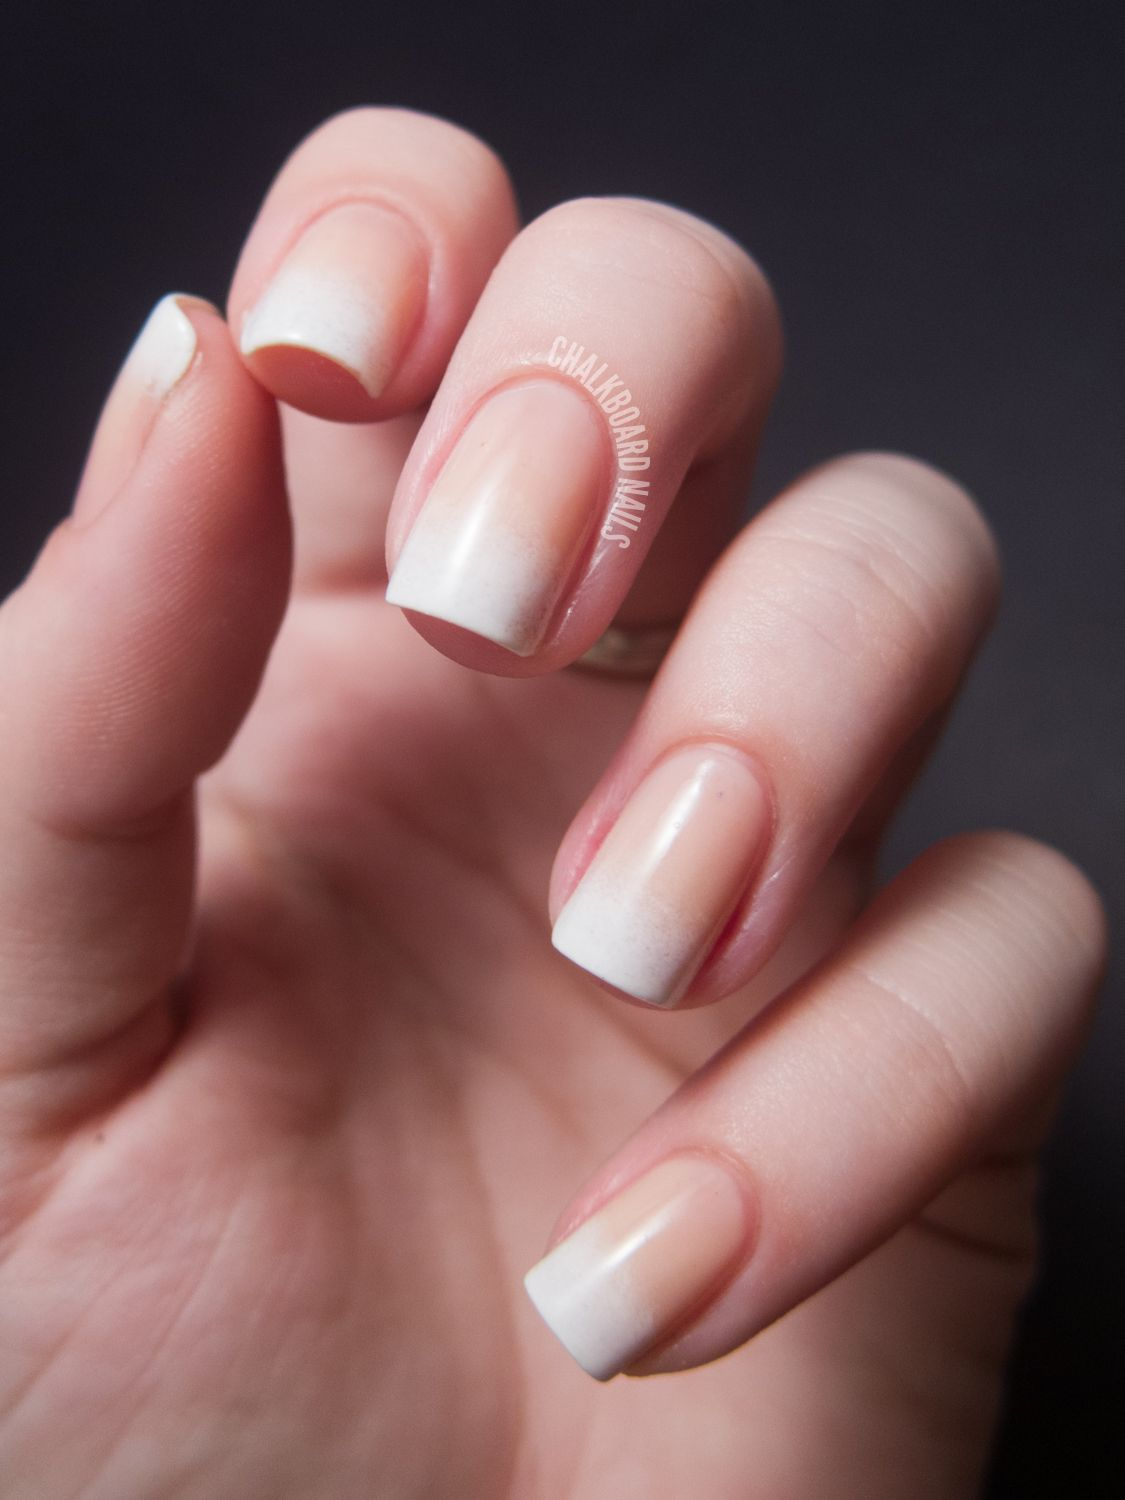 Chalkboard Nails French Manicure Gradient Love This Look